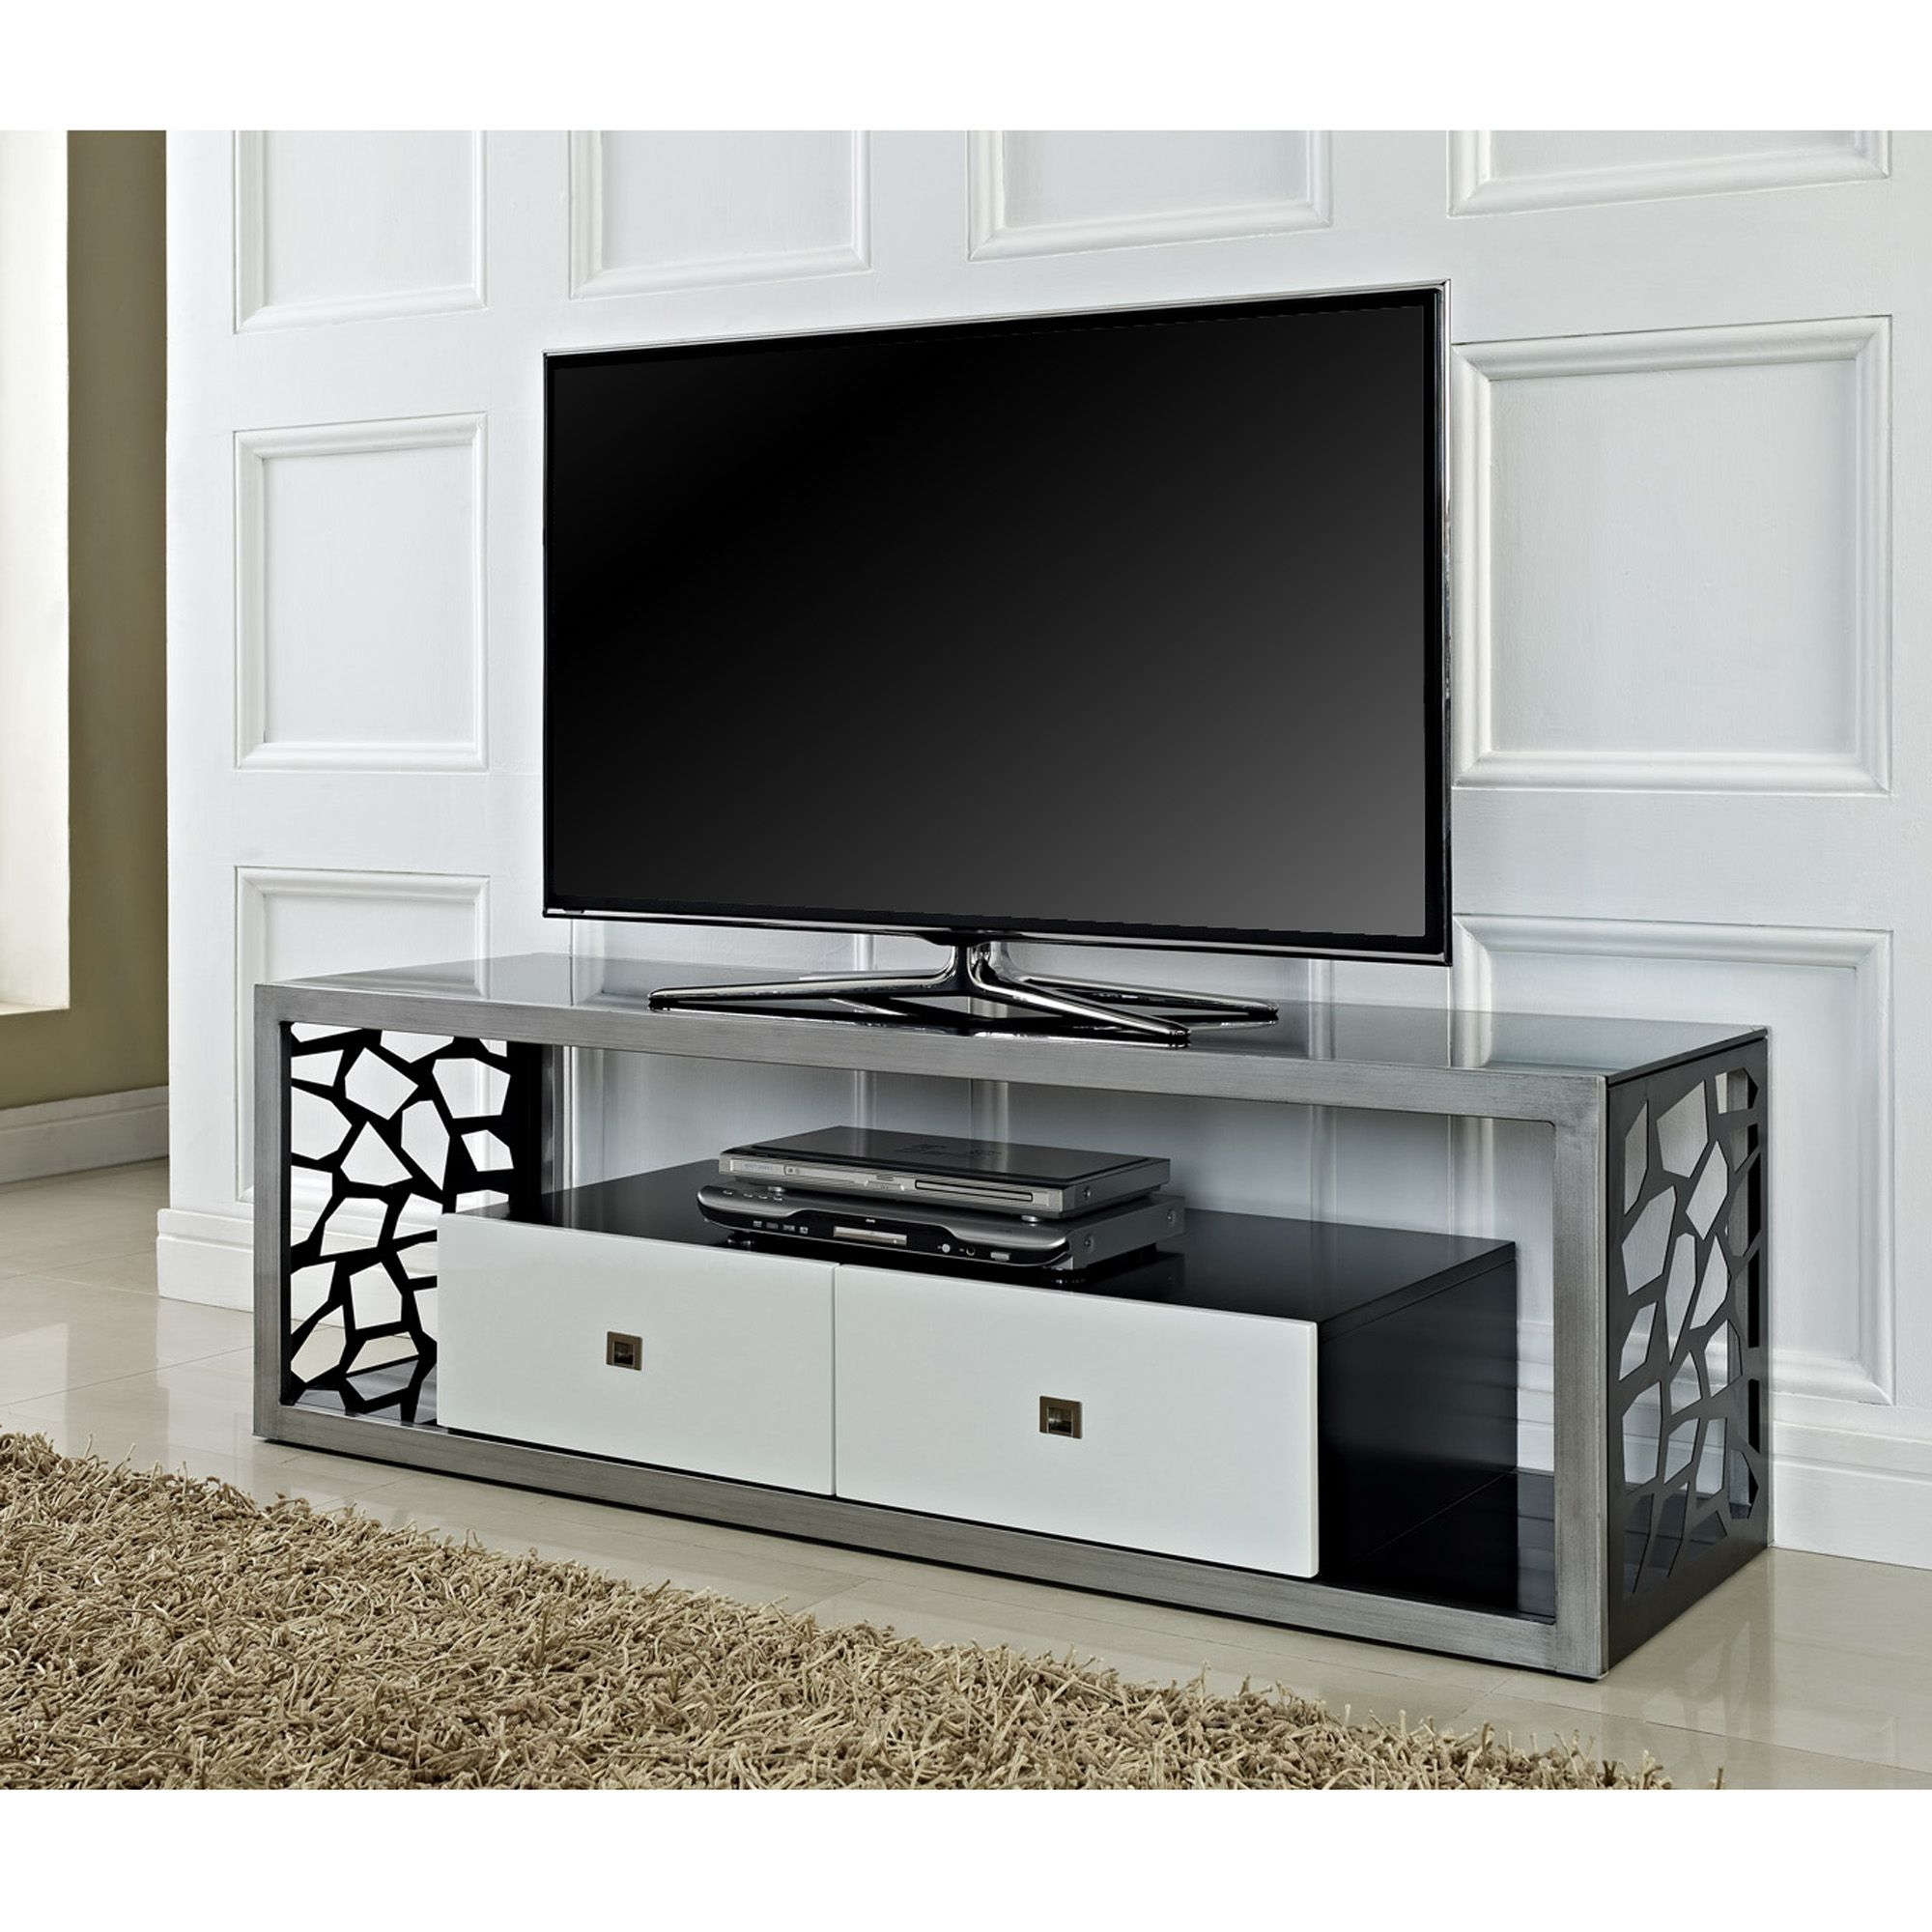 """Beautiful 60"""" Mosaic Tv Stand, Brushed Silver Frame With White Intended For Valencia 60 Inch Tv Stands (Gallery 19 of 20)"""